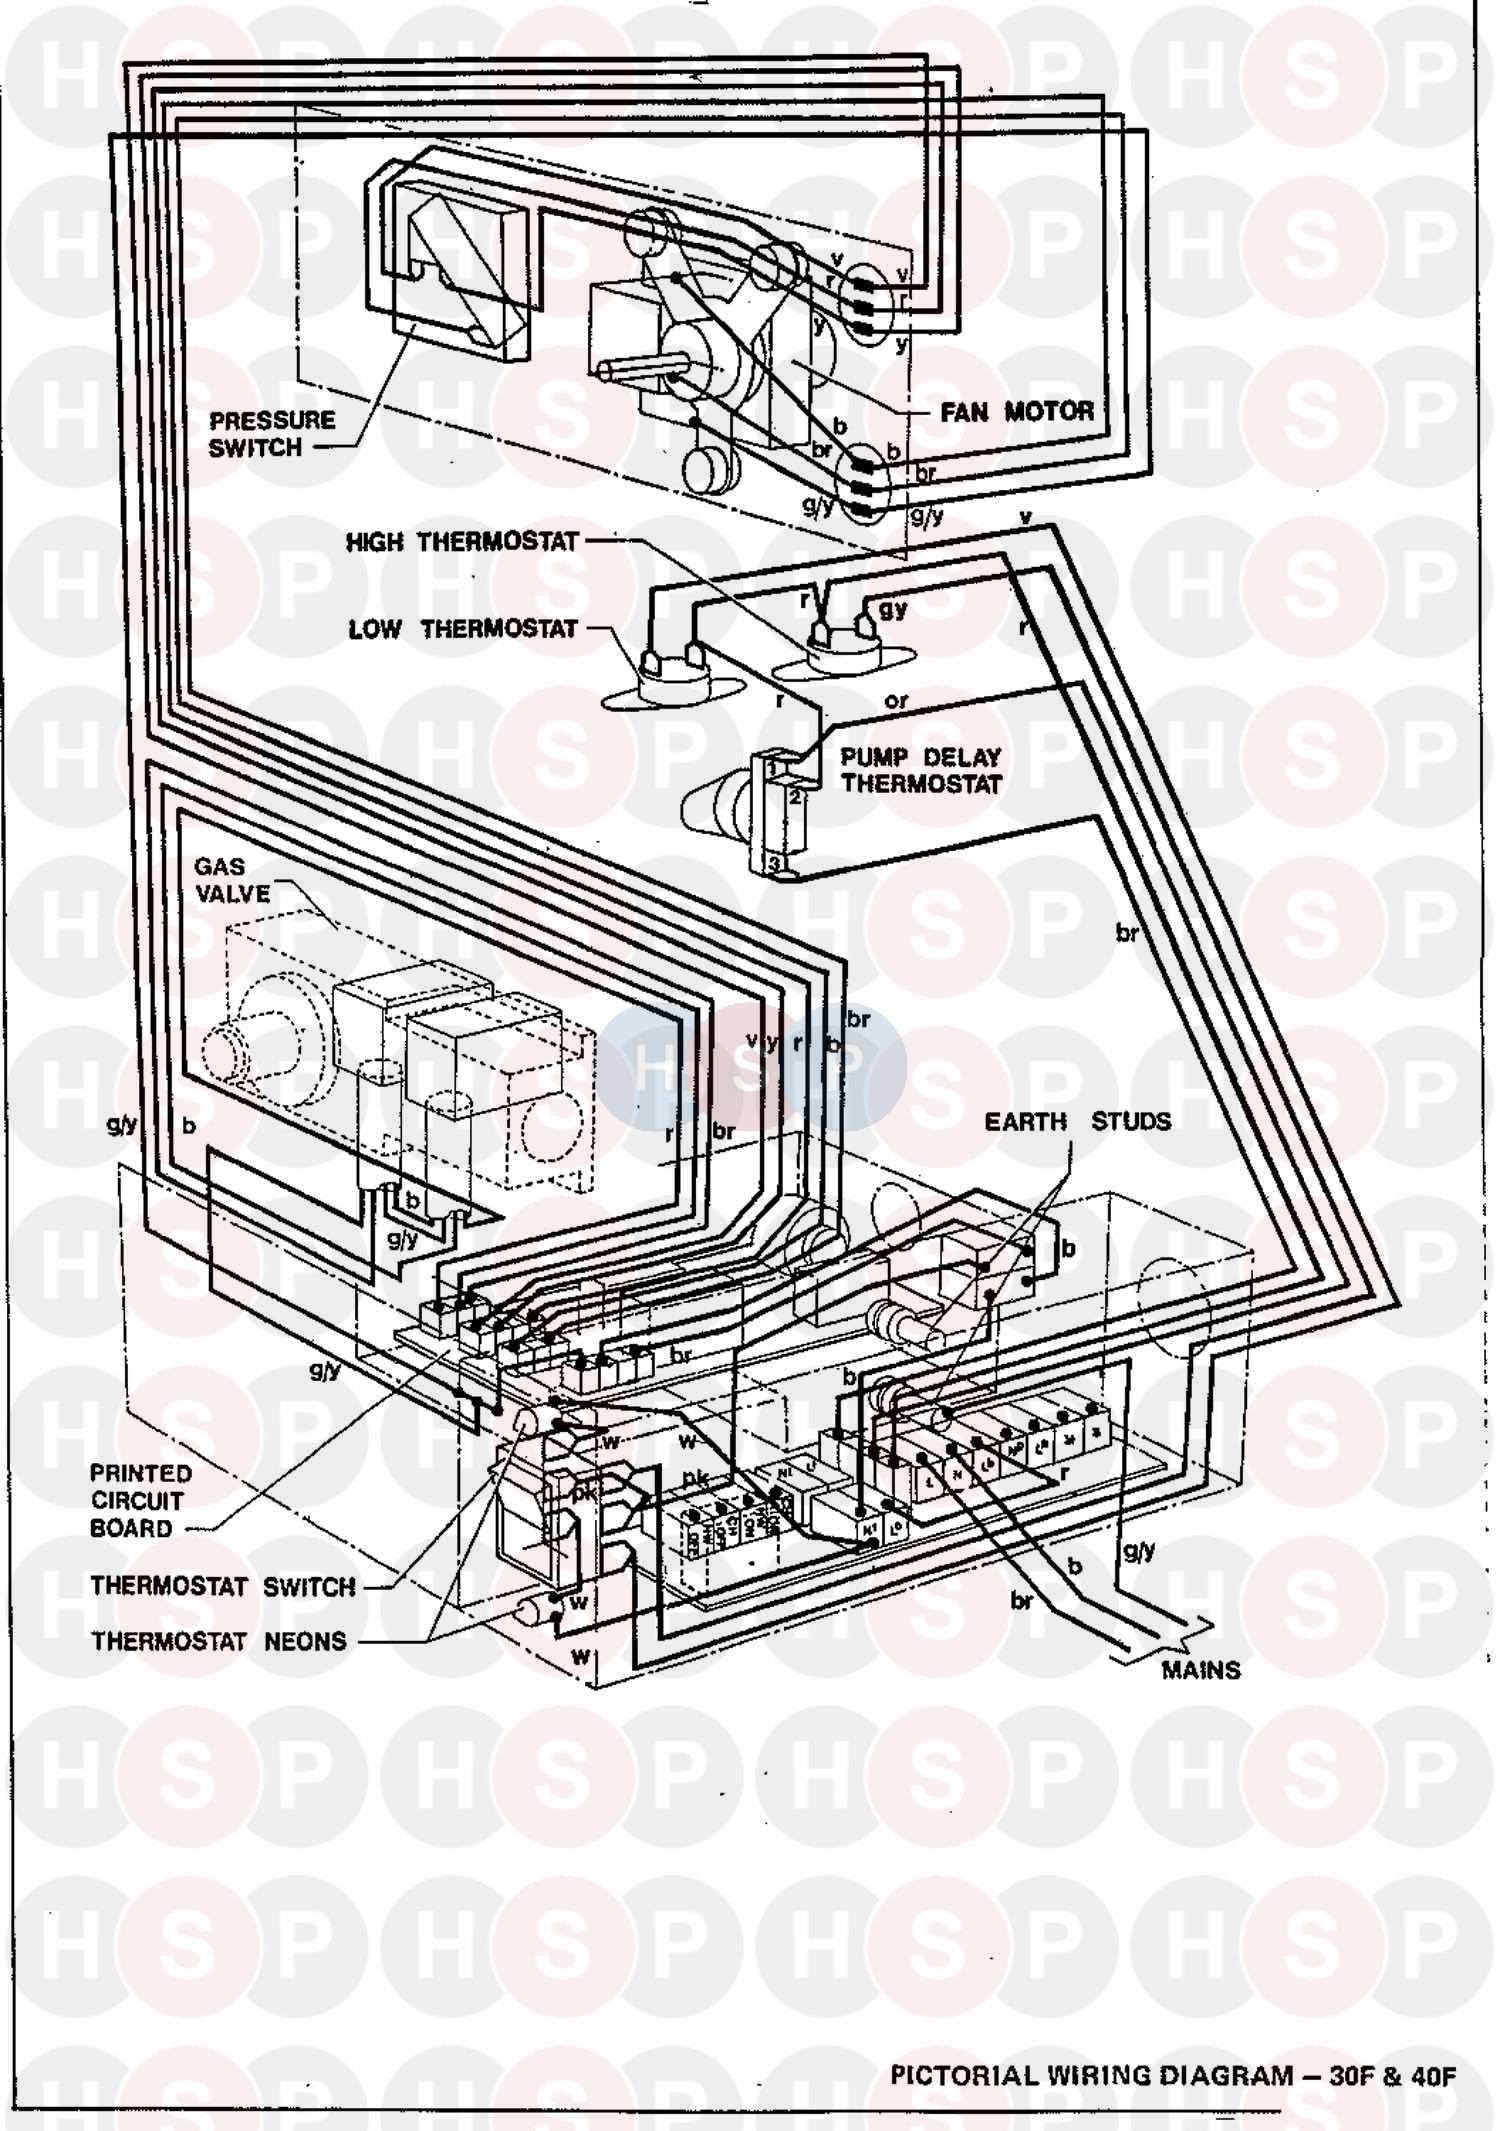 Ideal EXCEL 60F (WIRING DIAGRAM 3) Diagram | Heating Spare Parts